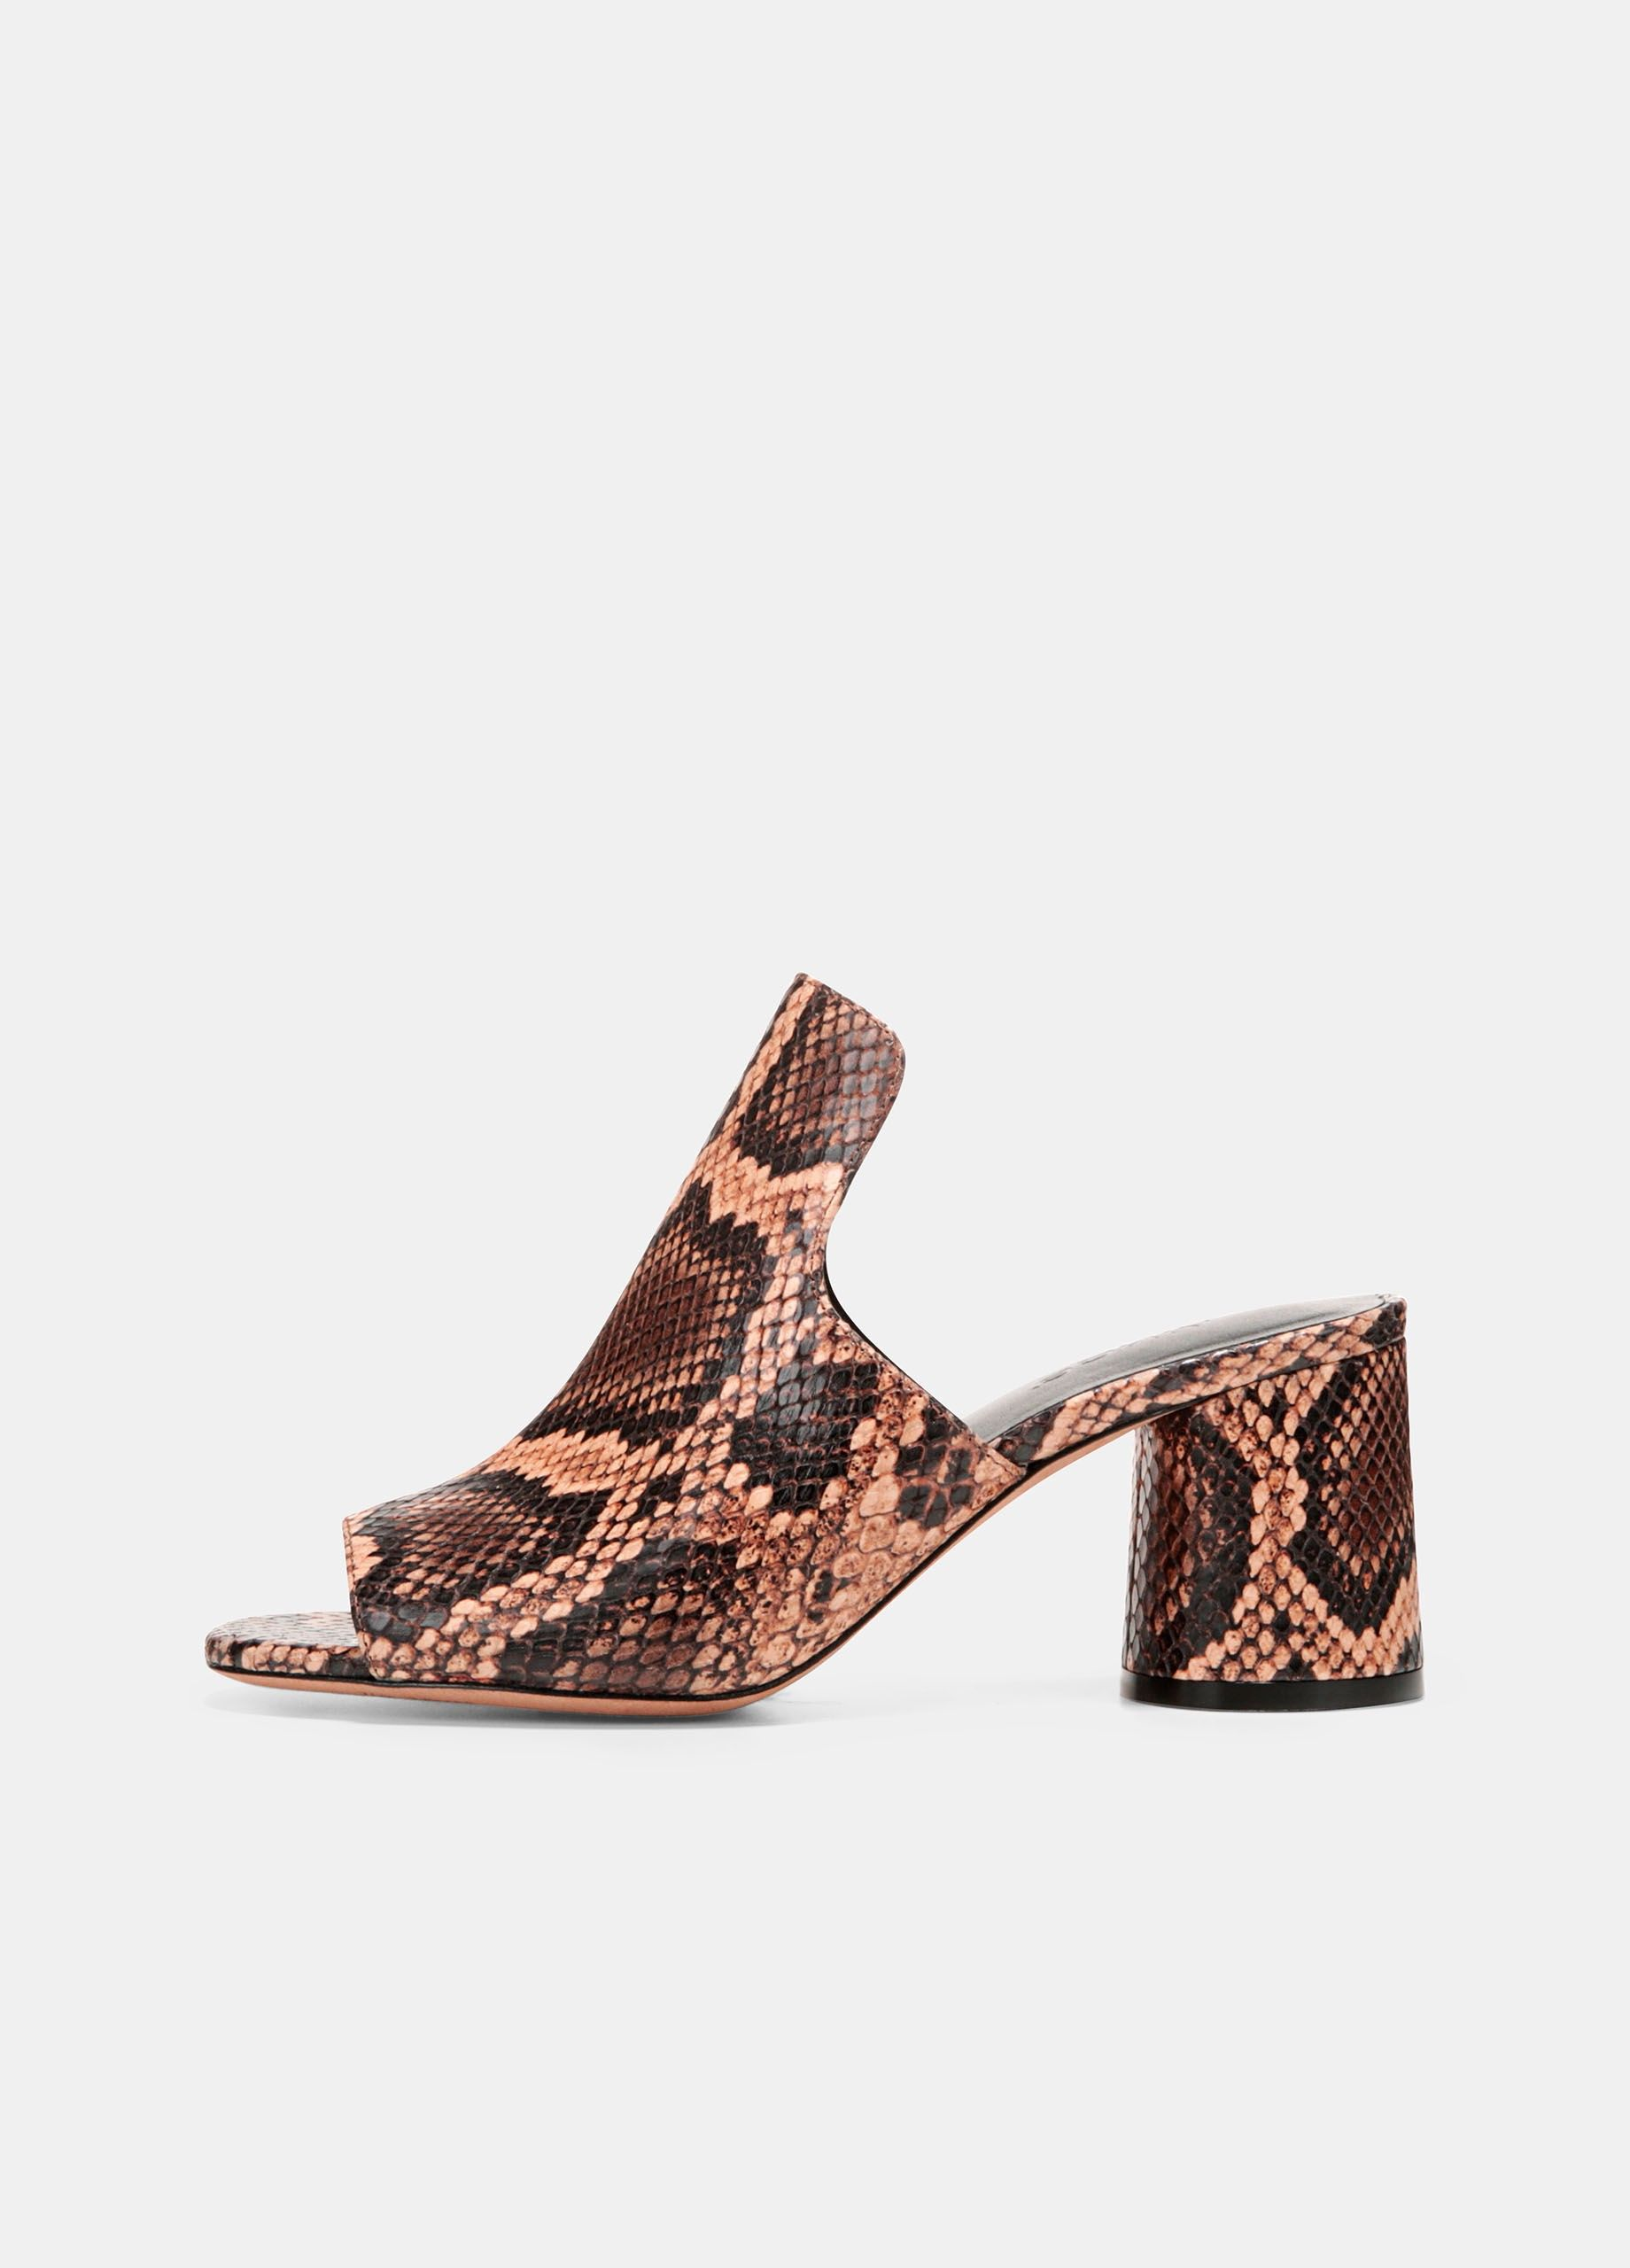 bba20702b47 Tanay Snake-Print Leather Slides - Senegal by Vince in 2018 ...